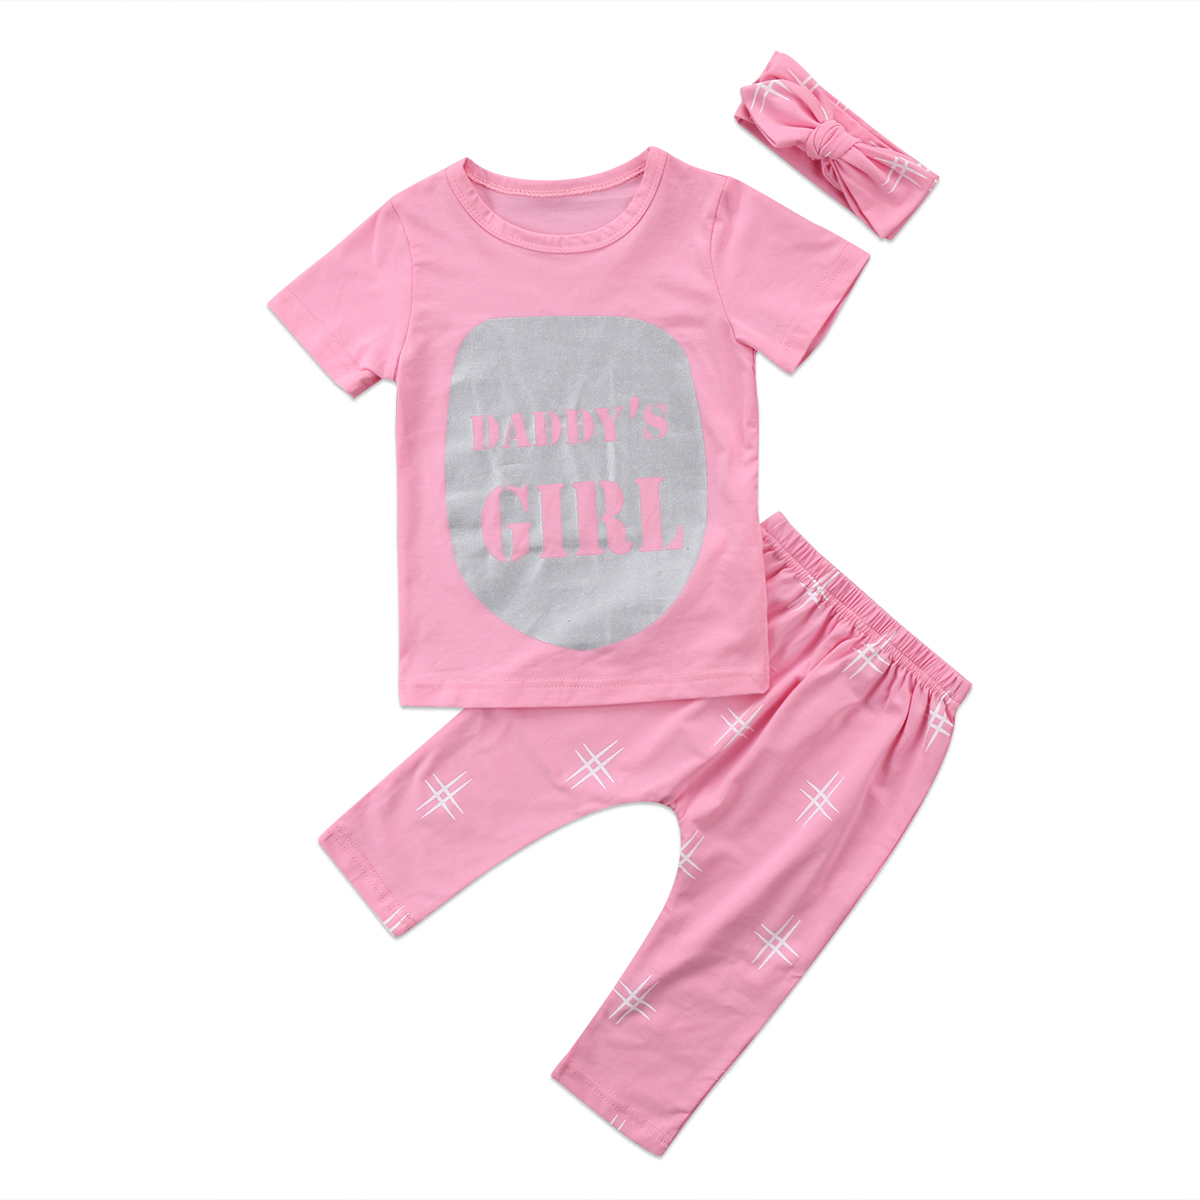 3Pcs Hot Sell Newborn Toddler Kid Baby Girls Clothes Bow +Pink Letter T-shirt Top+ Pink Long Pants Outfit Set 0-24M